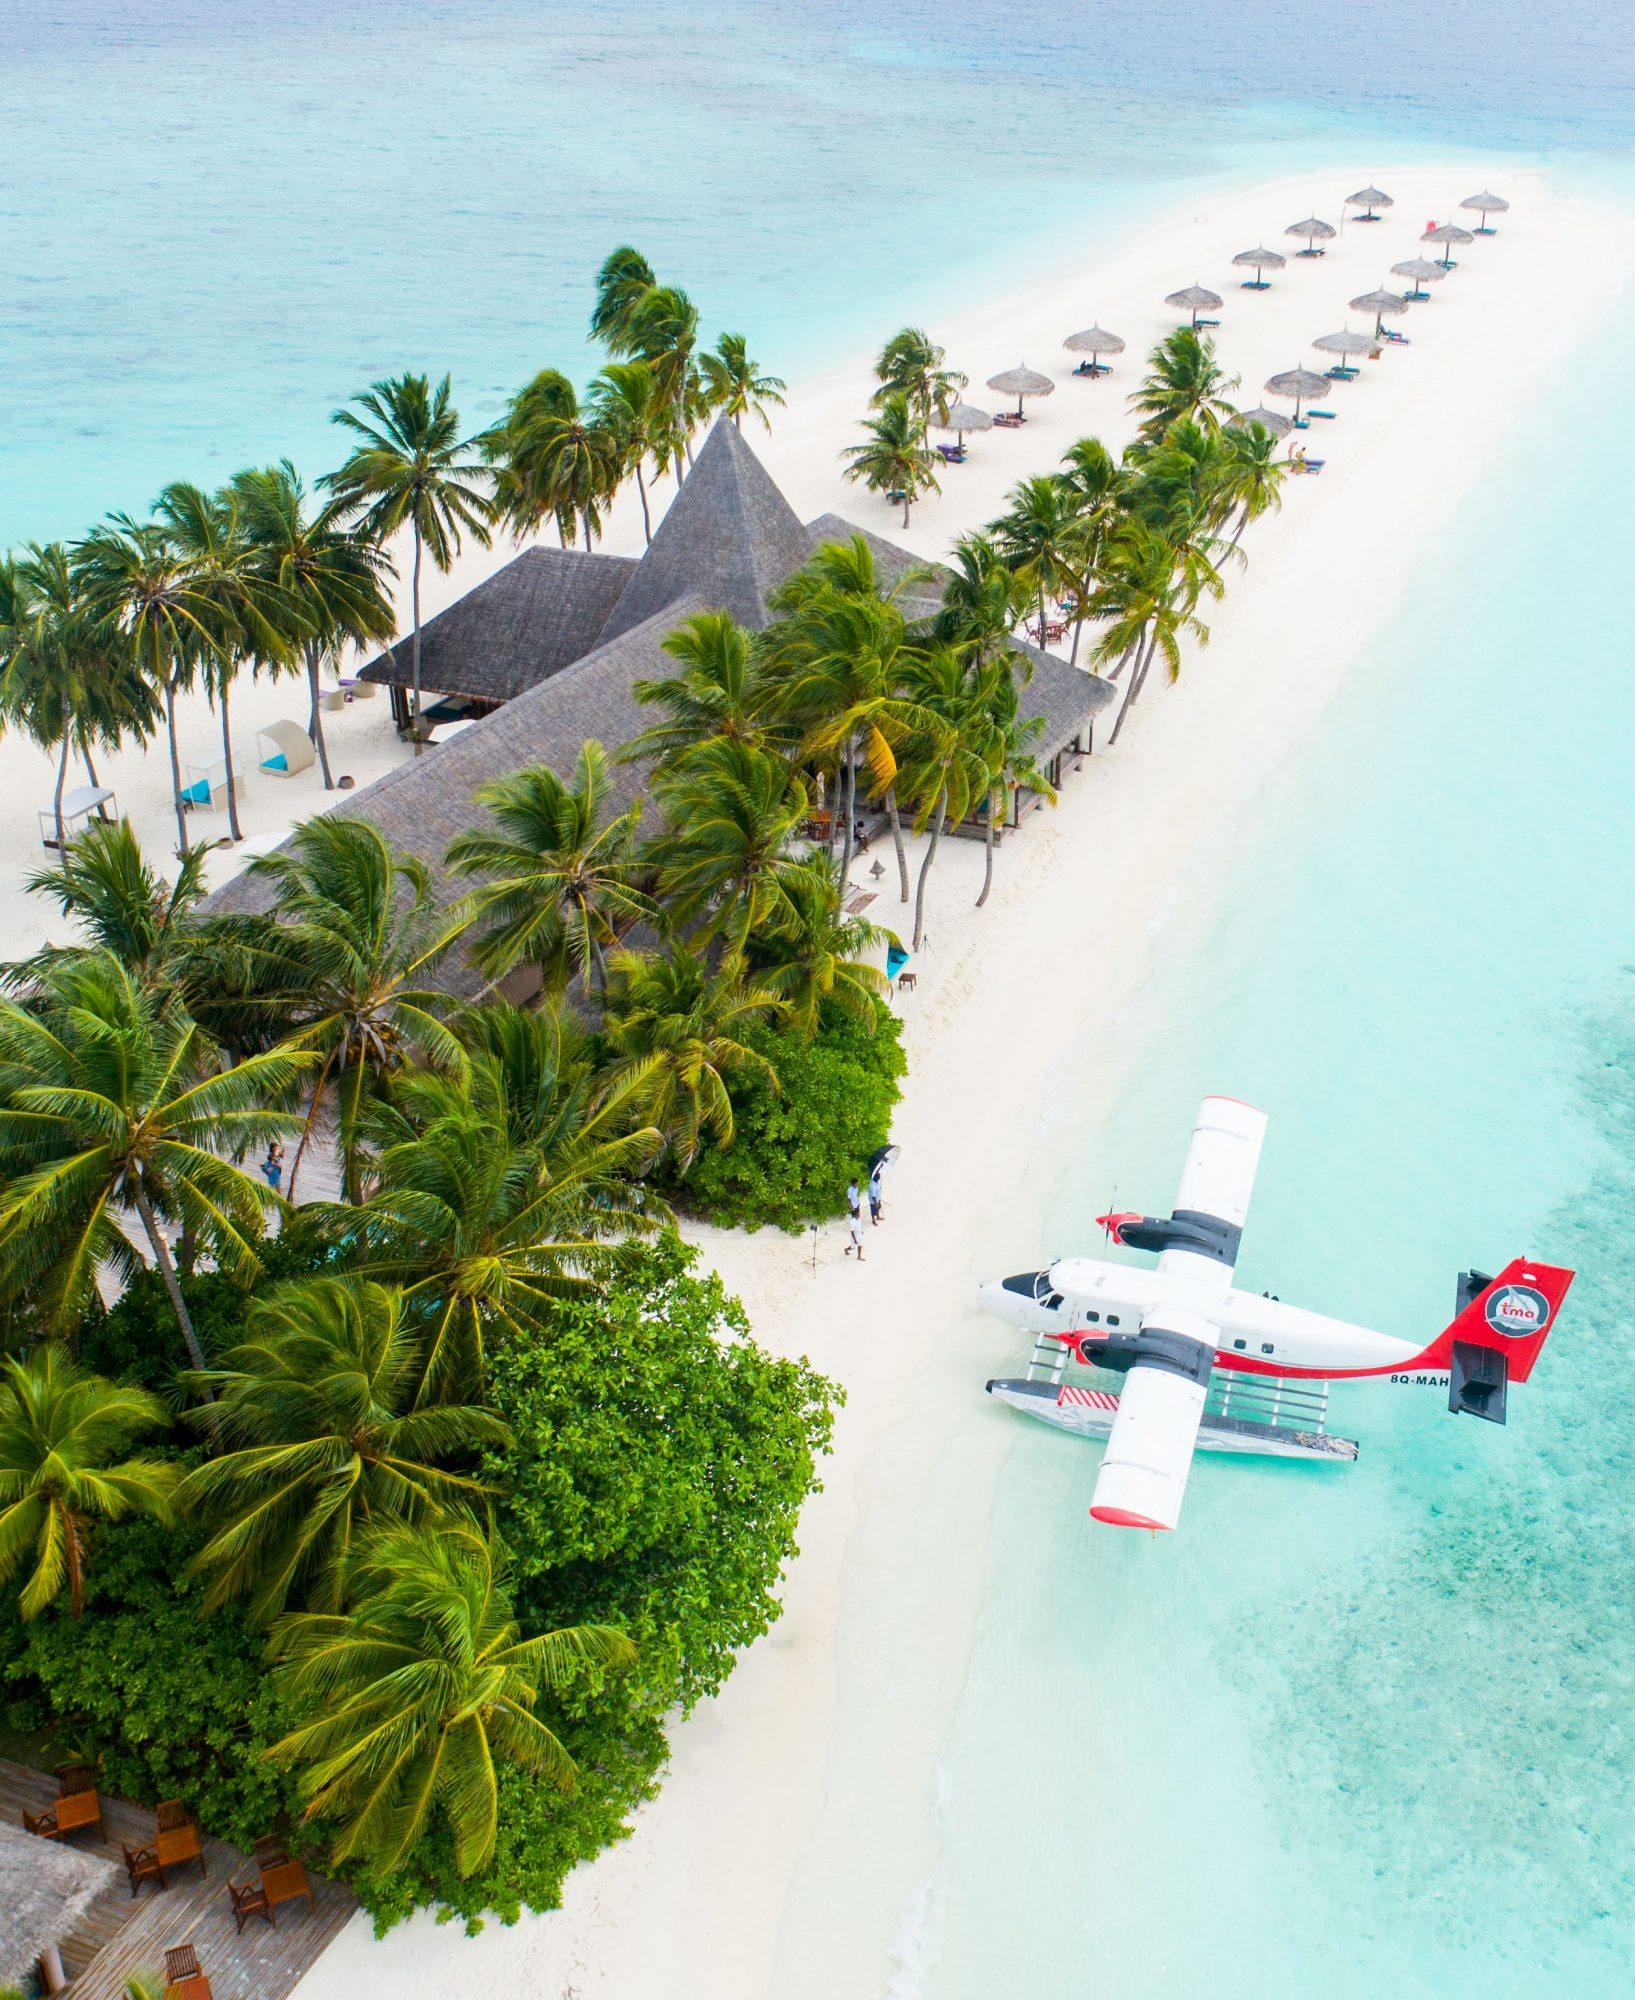 Aerial view of a seaplane parked at a resort on a Maldives island on SelfishMe Travel LLC